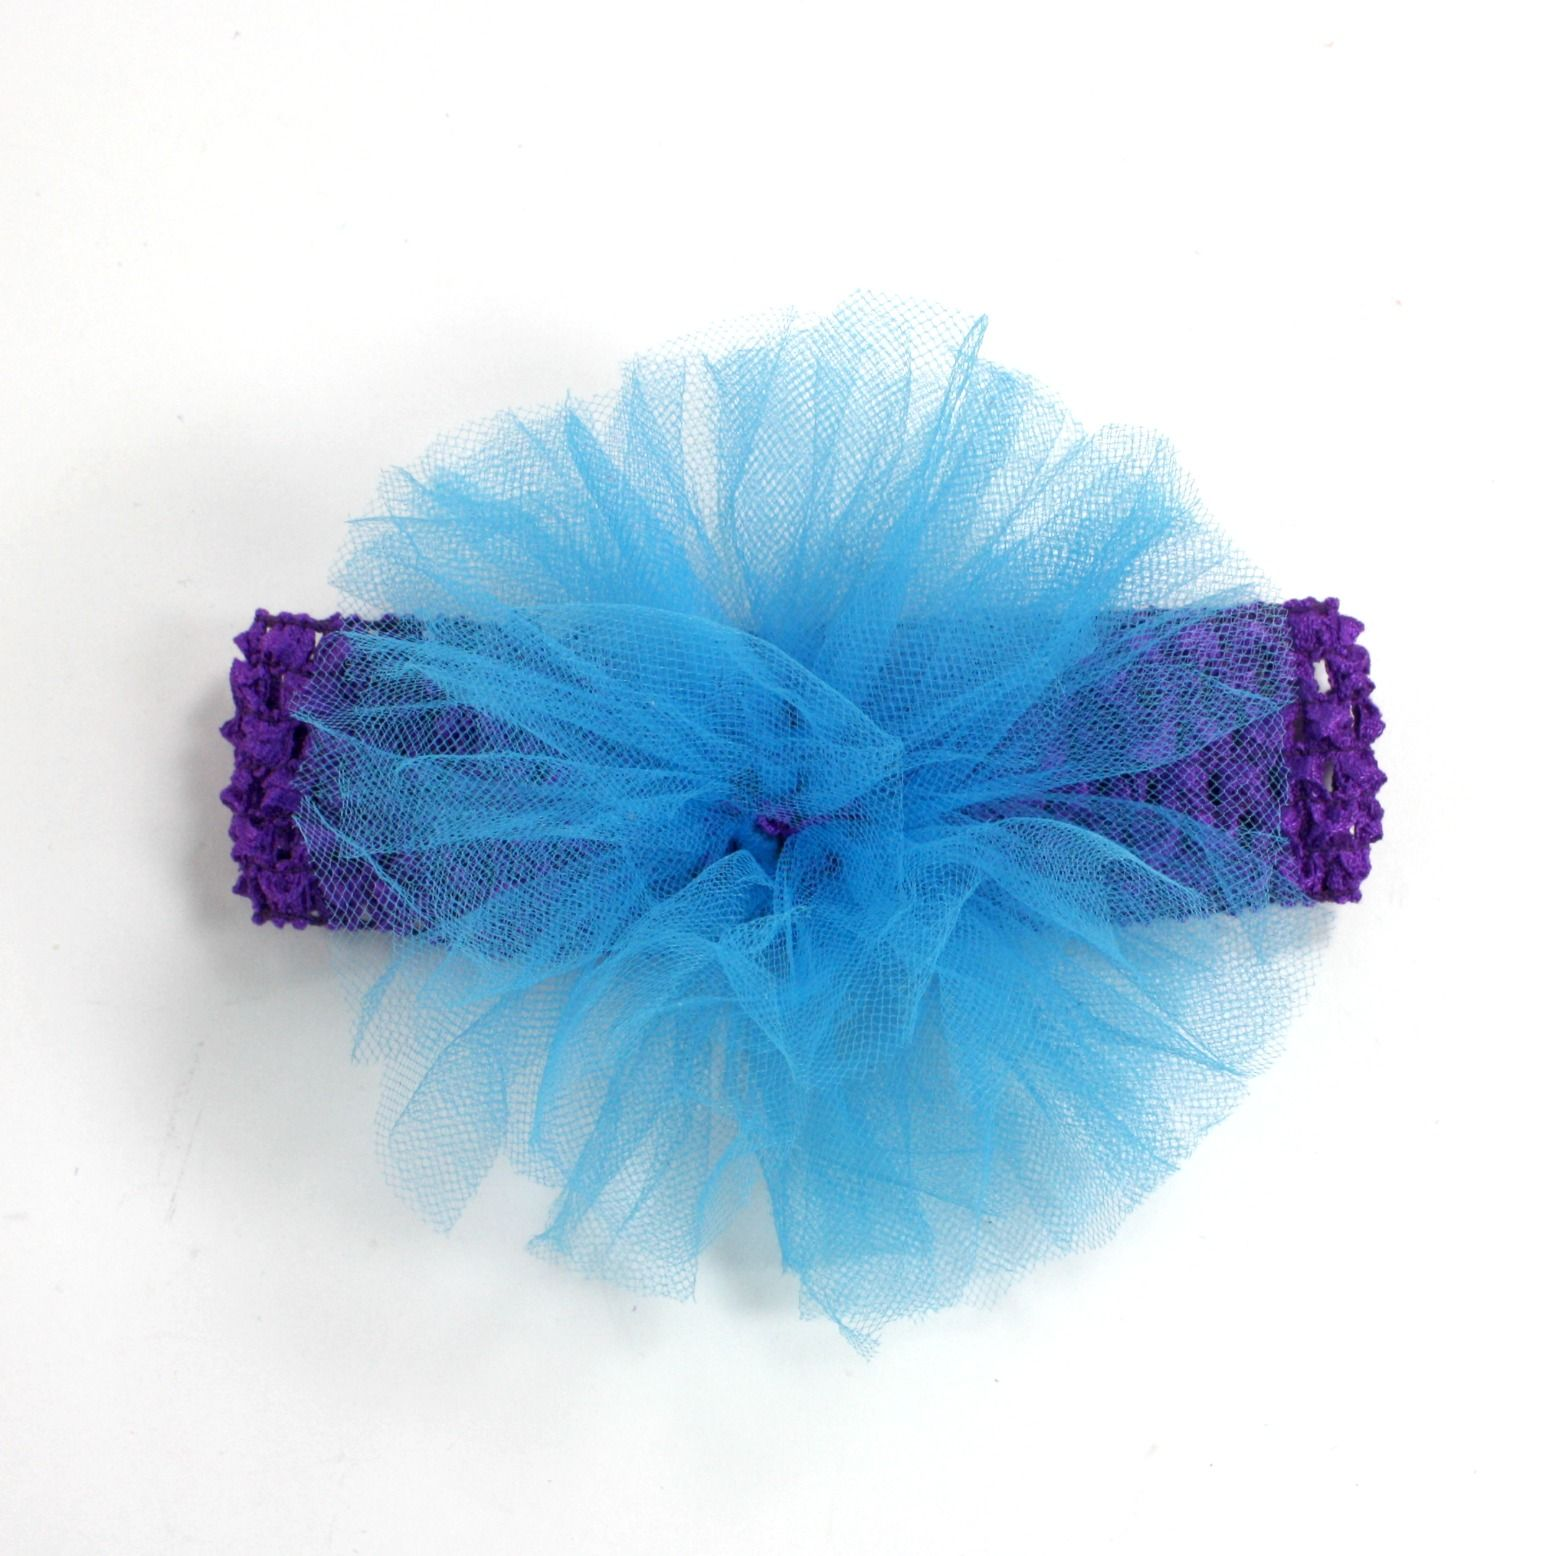 Crochet headband puff tutorial 001 tutorial how to make a crochet headband puff tutorial 001 tutorial how to make a headband with a tulle puff baditri Image collections